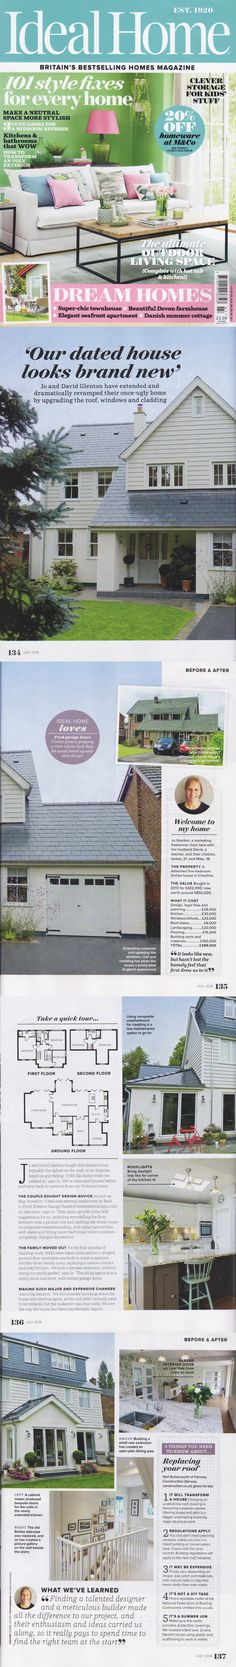 "Ideal Home July 2018 ""Our dated house looks brand new""  New England Dream Home"